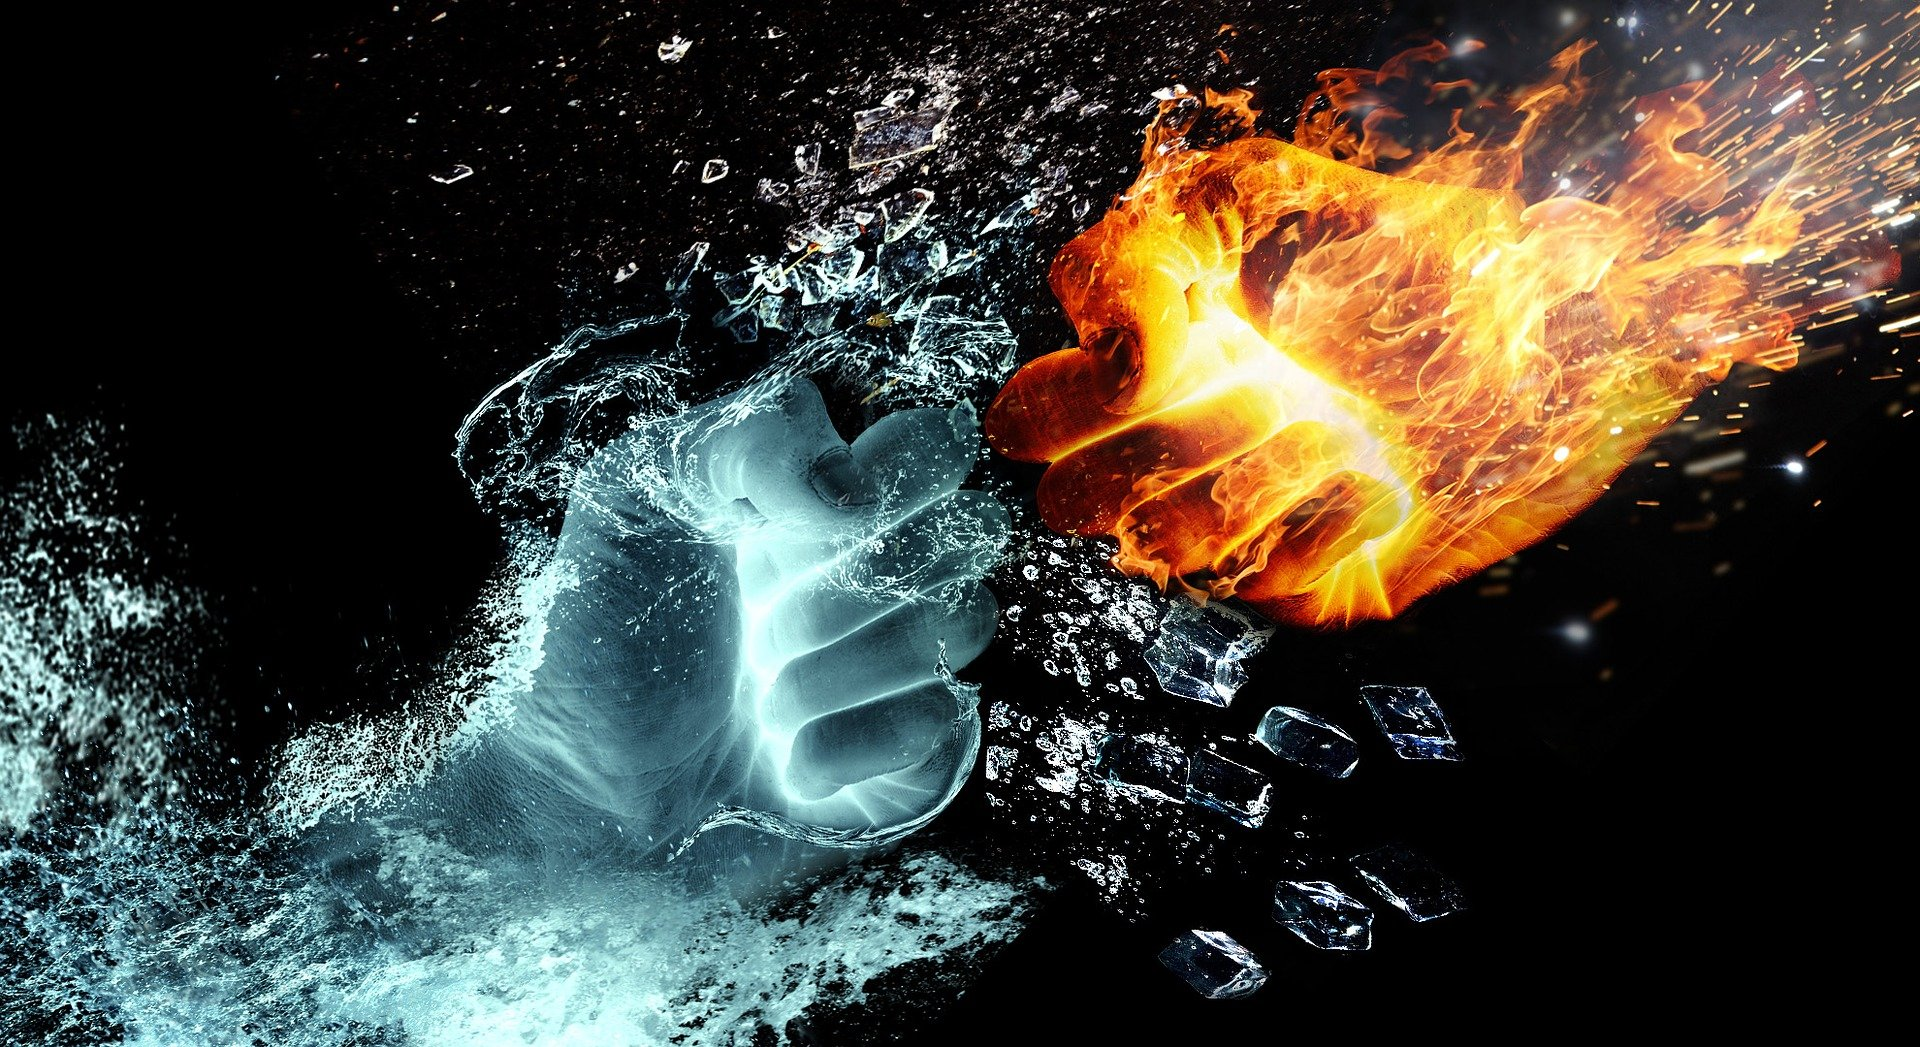 Fire can run both hot and cold, but fire is associated with anger for reasons that make sense to me.